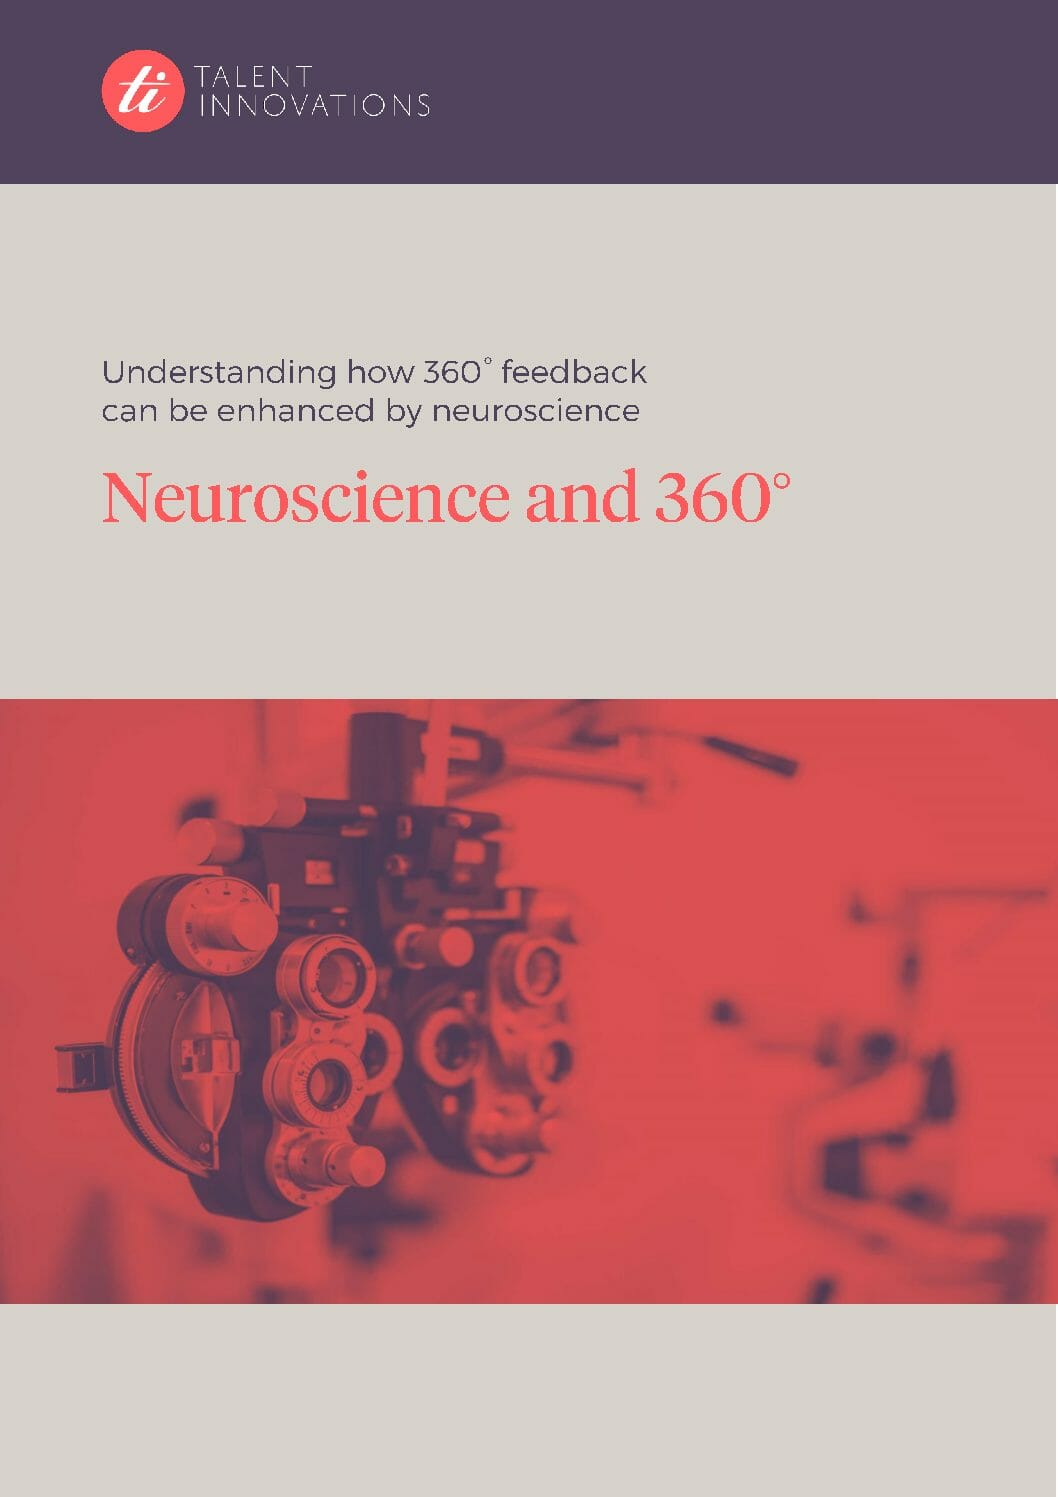 Neuroscience and 360